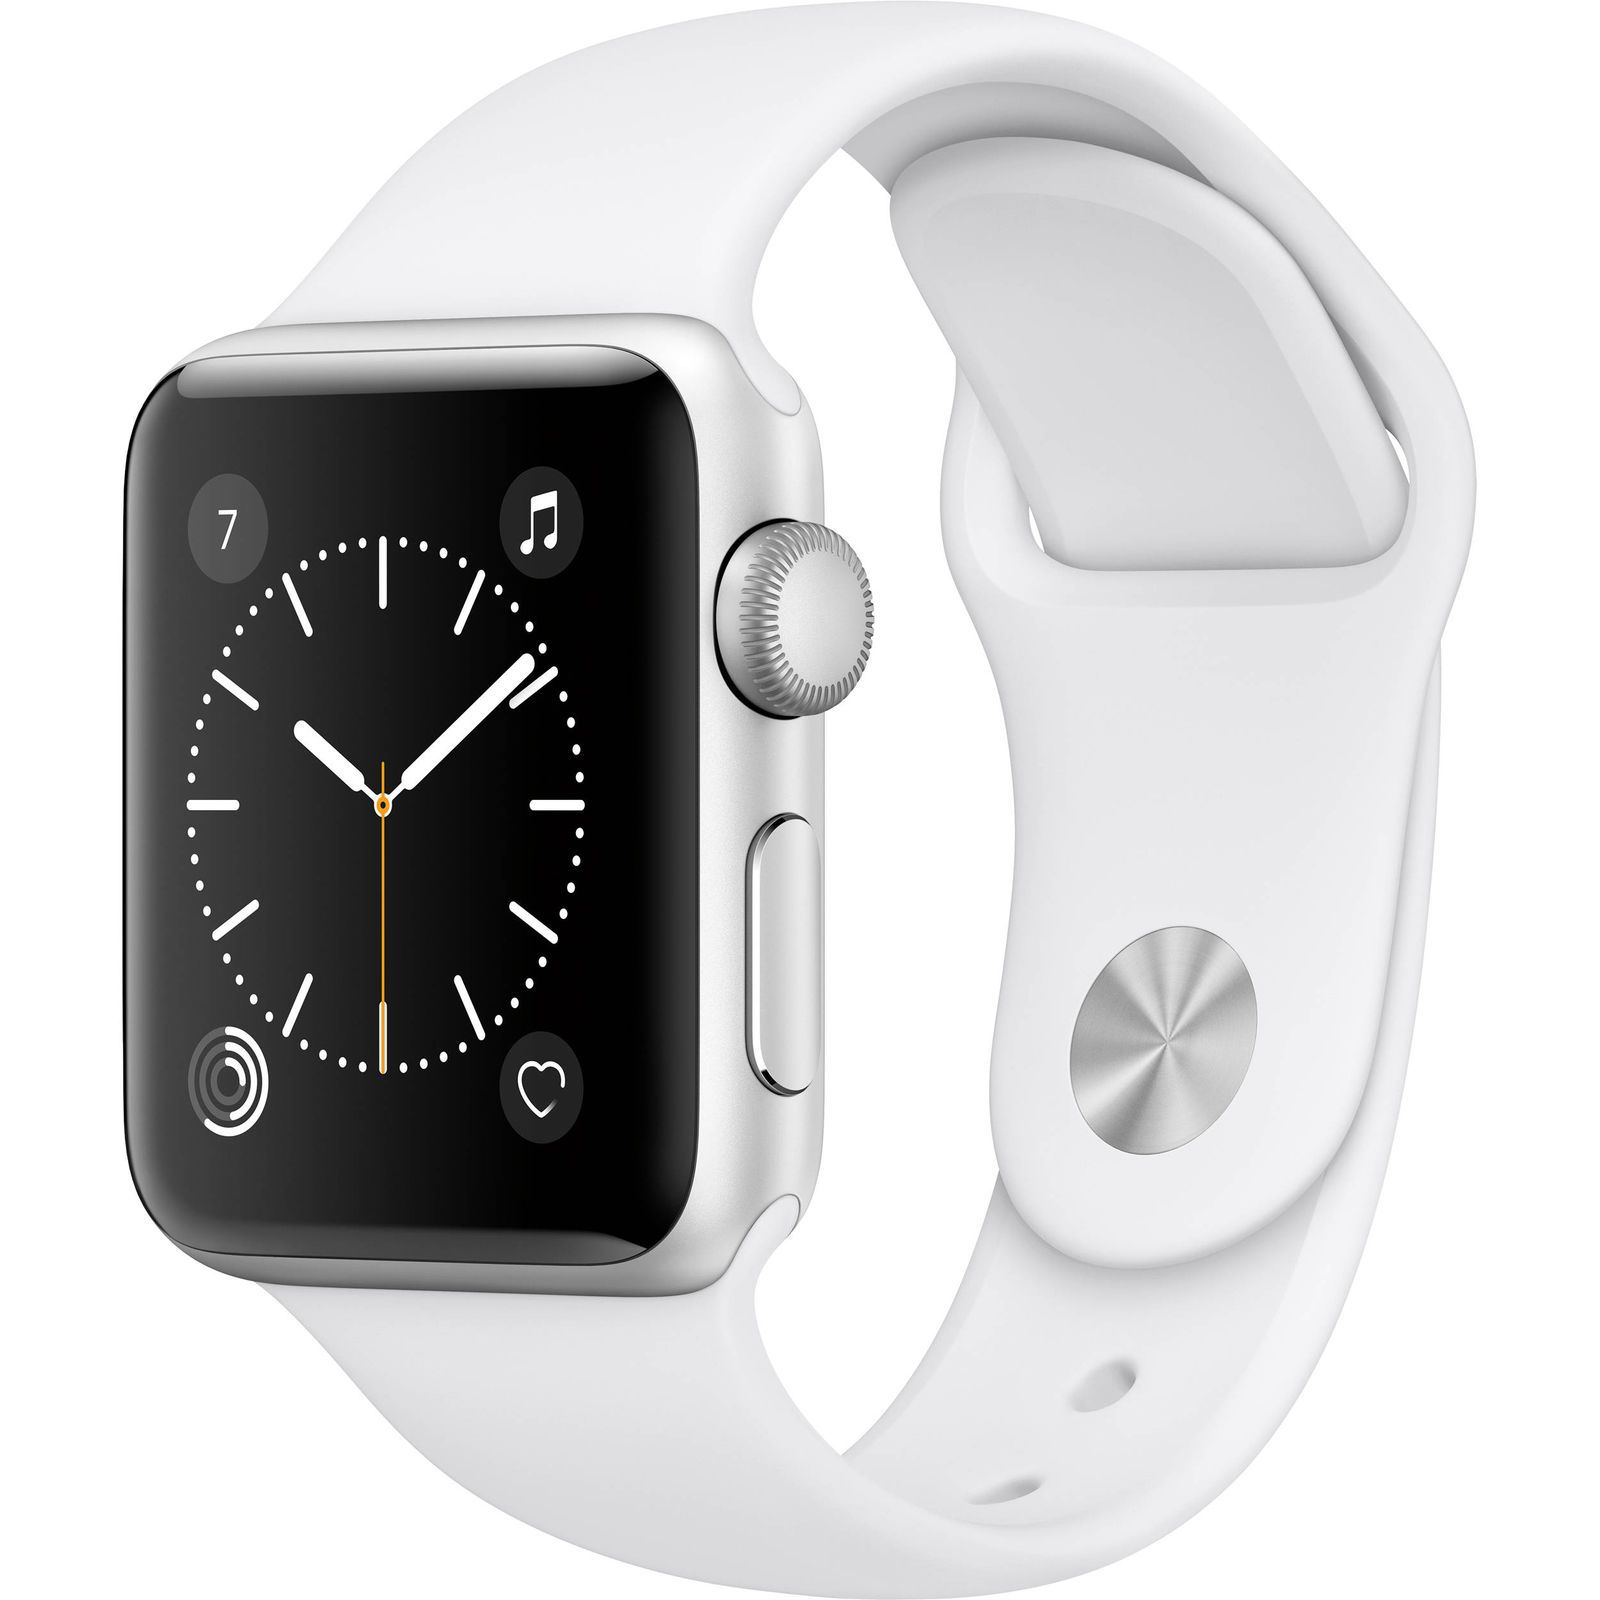 Apple Watch Series 2 Aluminum A Grade 38mm Or 42mm Silver Rose Gold Space Gray Buy Apple Watch Apple Watch Apple Watch Sport 38mm